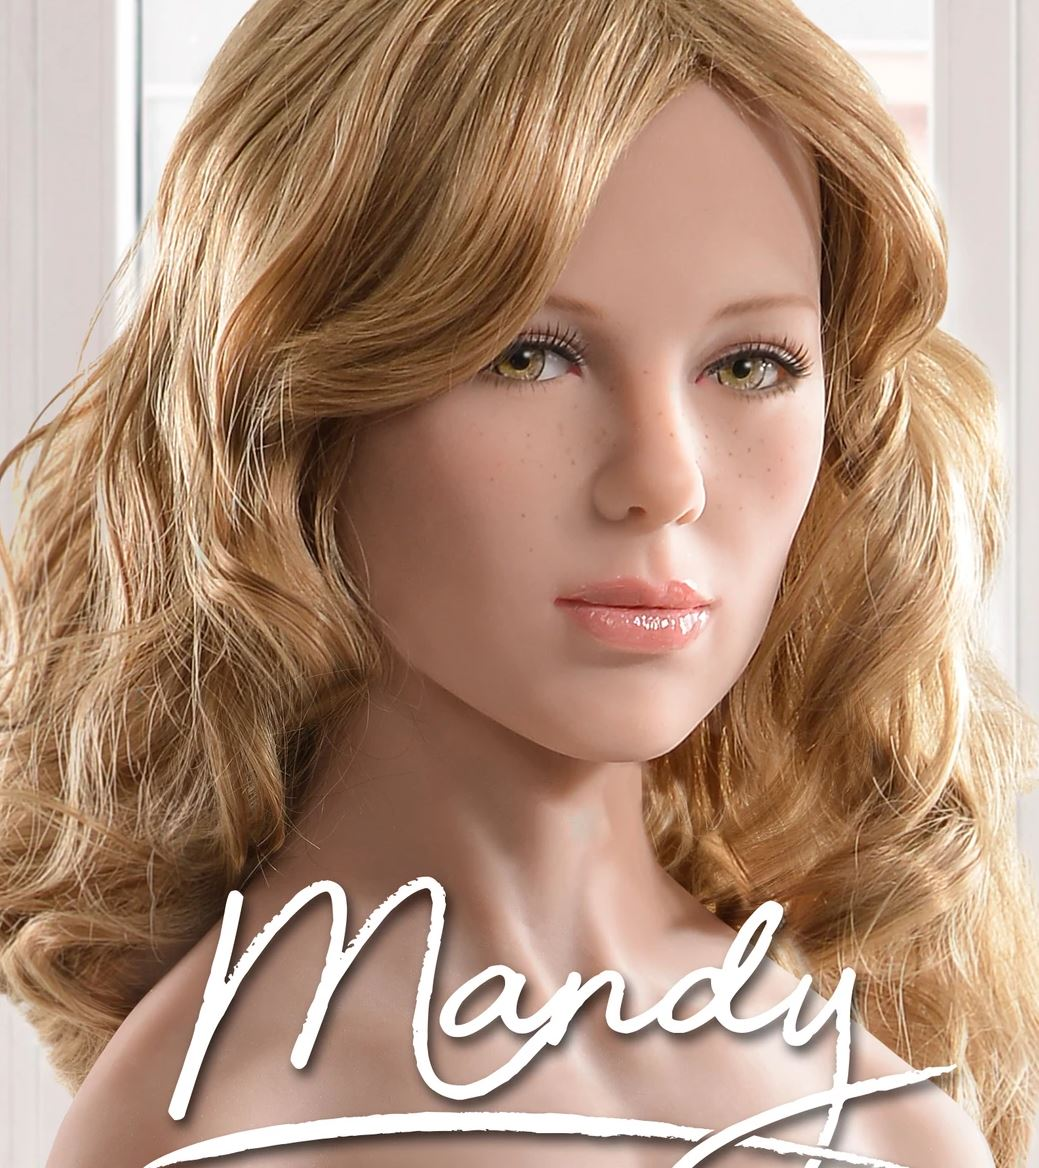 mandy - lightweight realistic sex doll